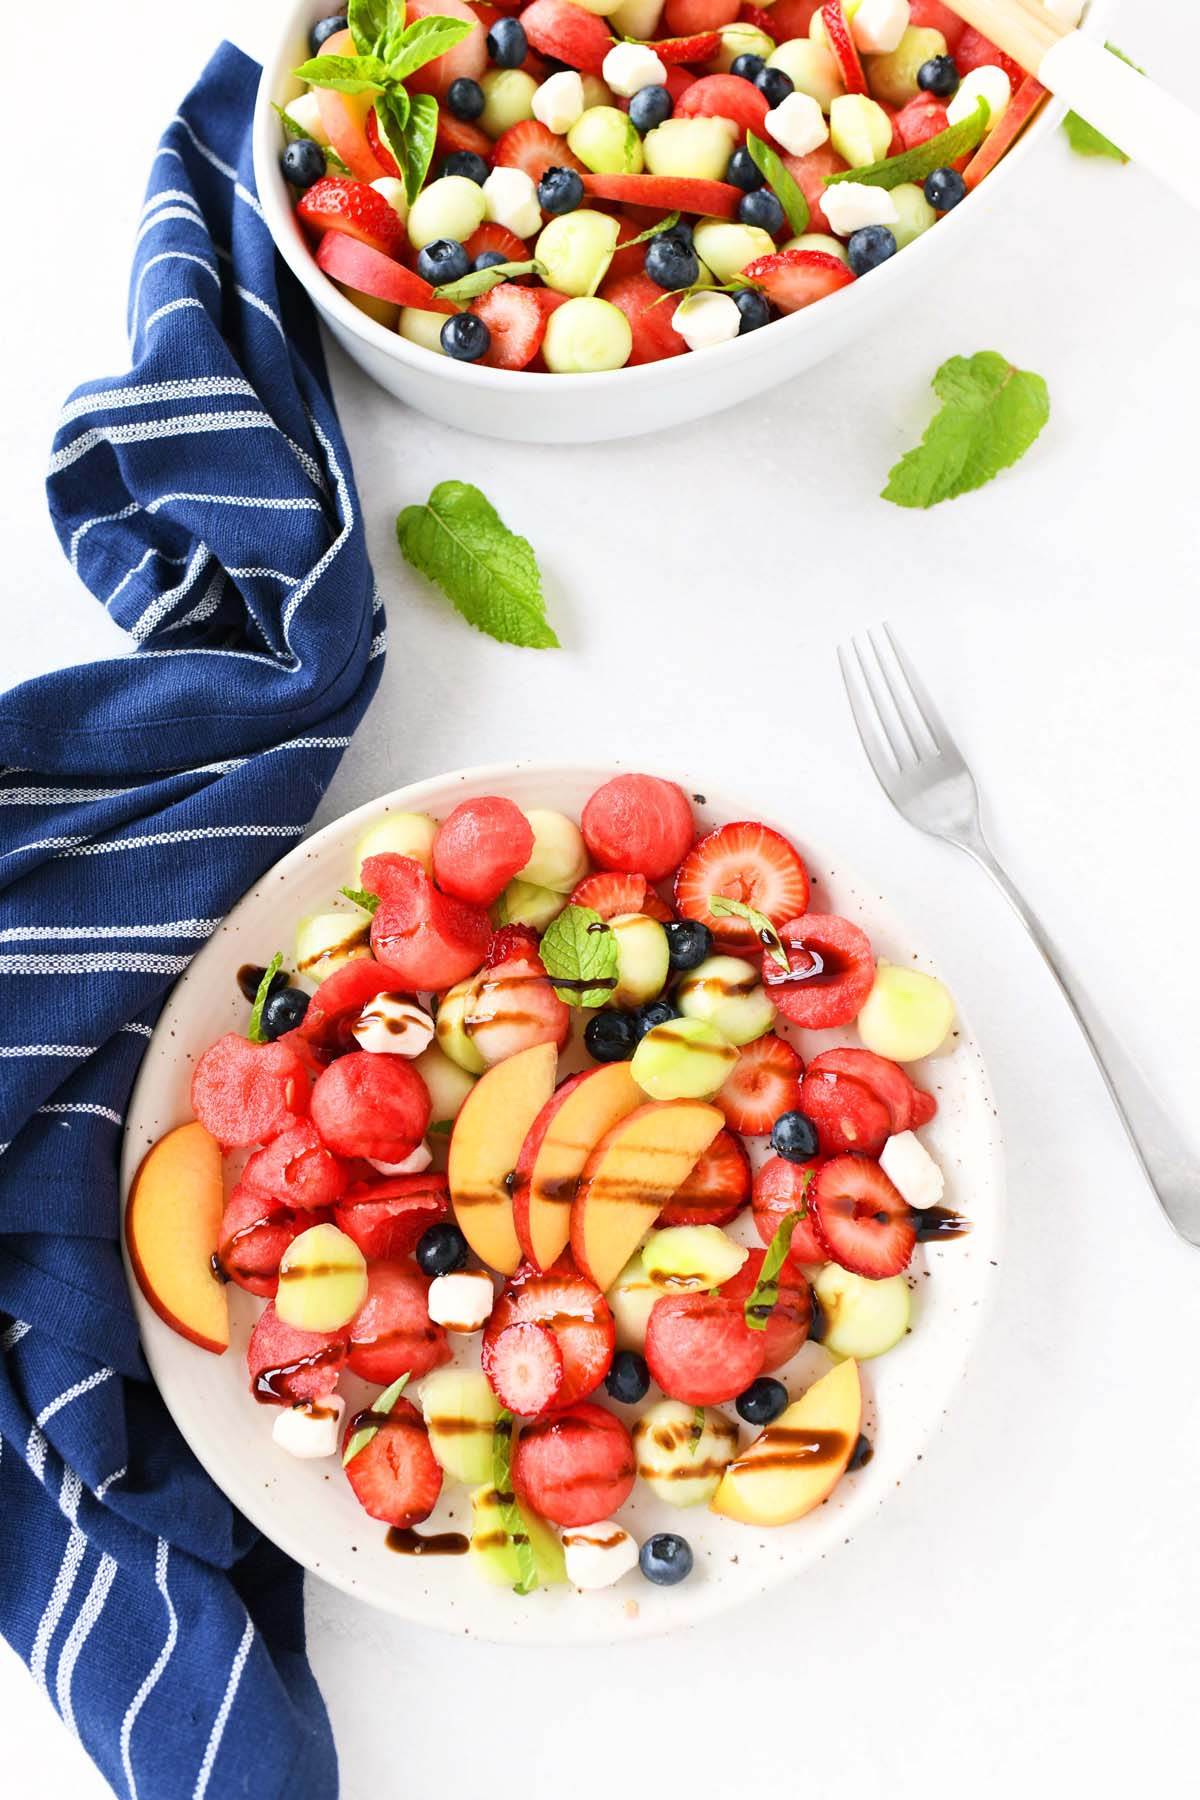 Melon Caprese Salad with a fork in a white plate.